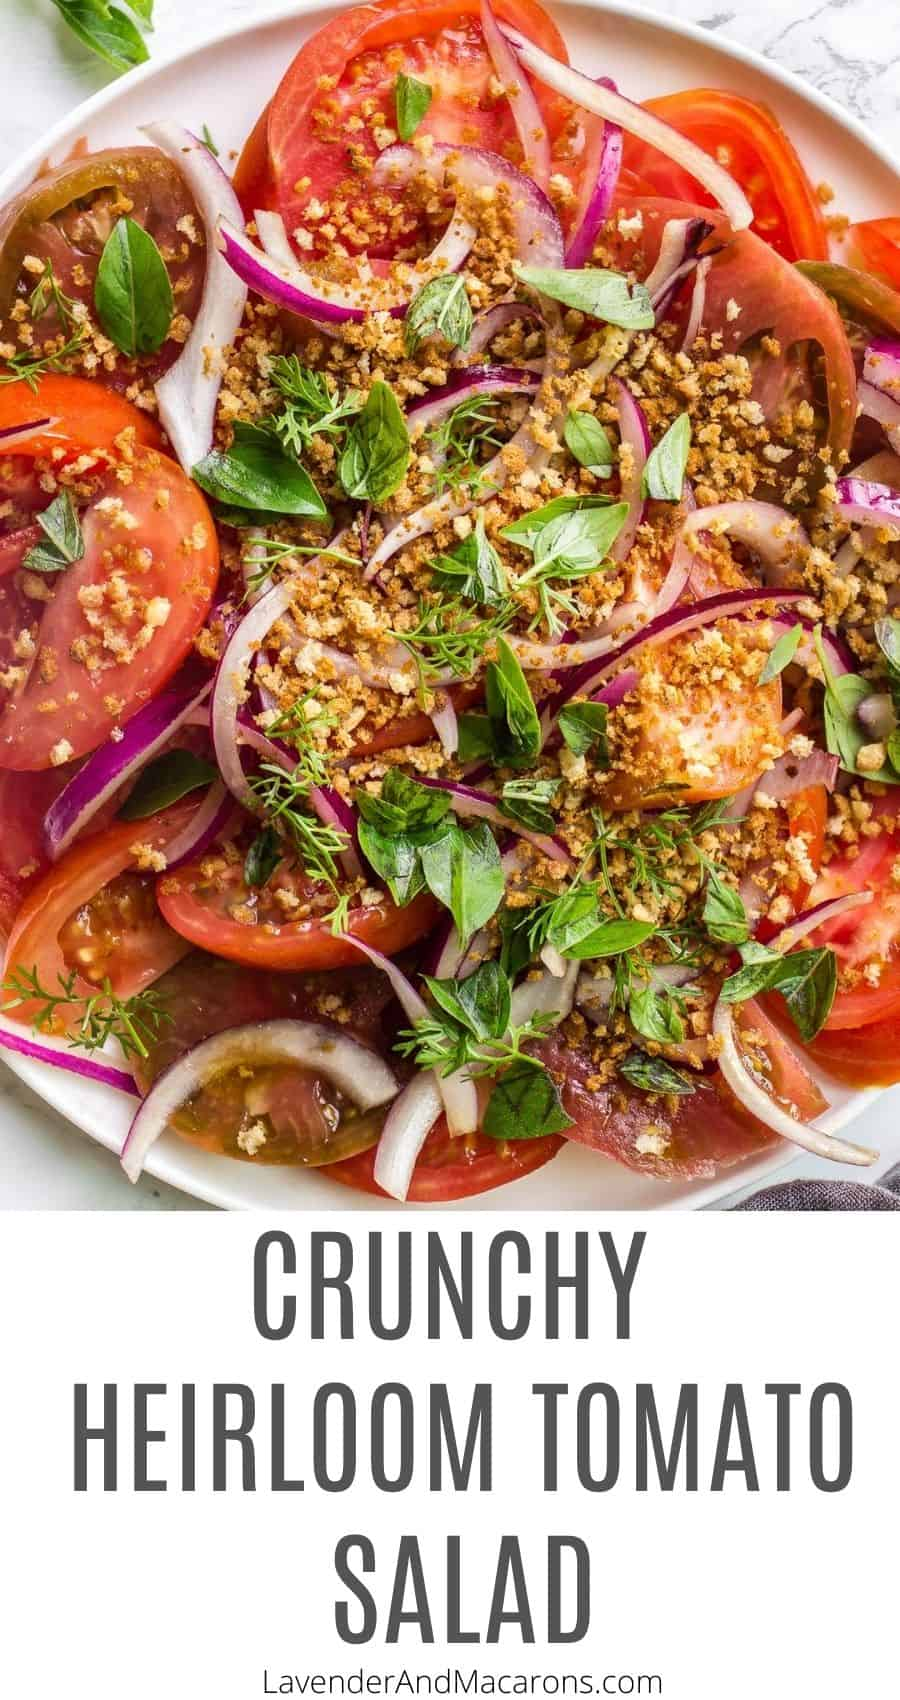 Crunchy Salad with tomatoes